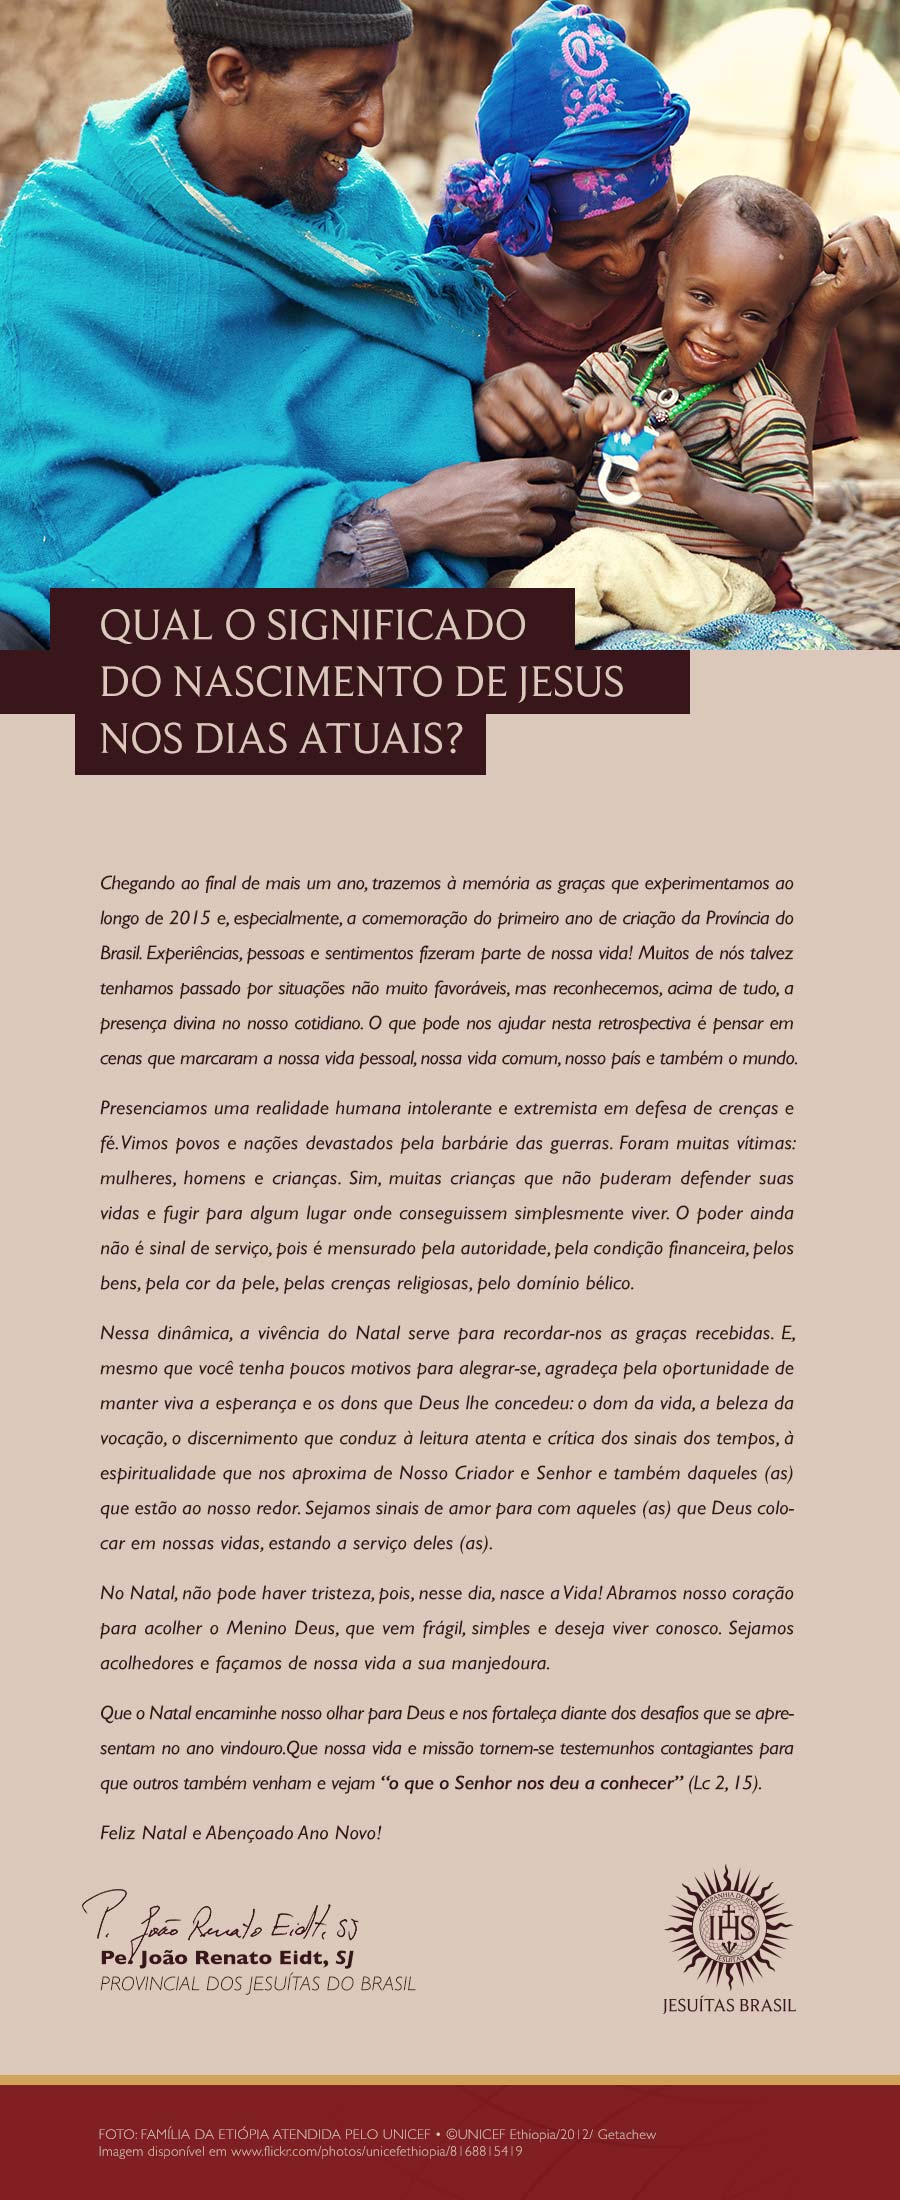 email-marketing-natal-2015-jesuitas-brasil-04